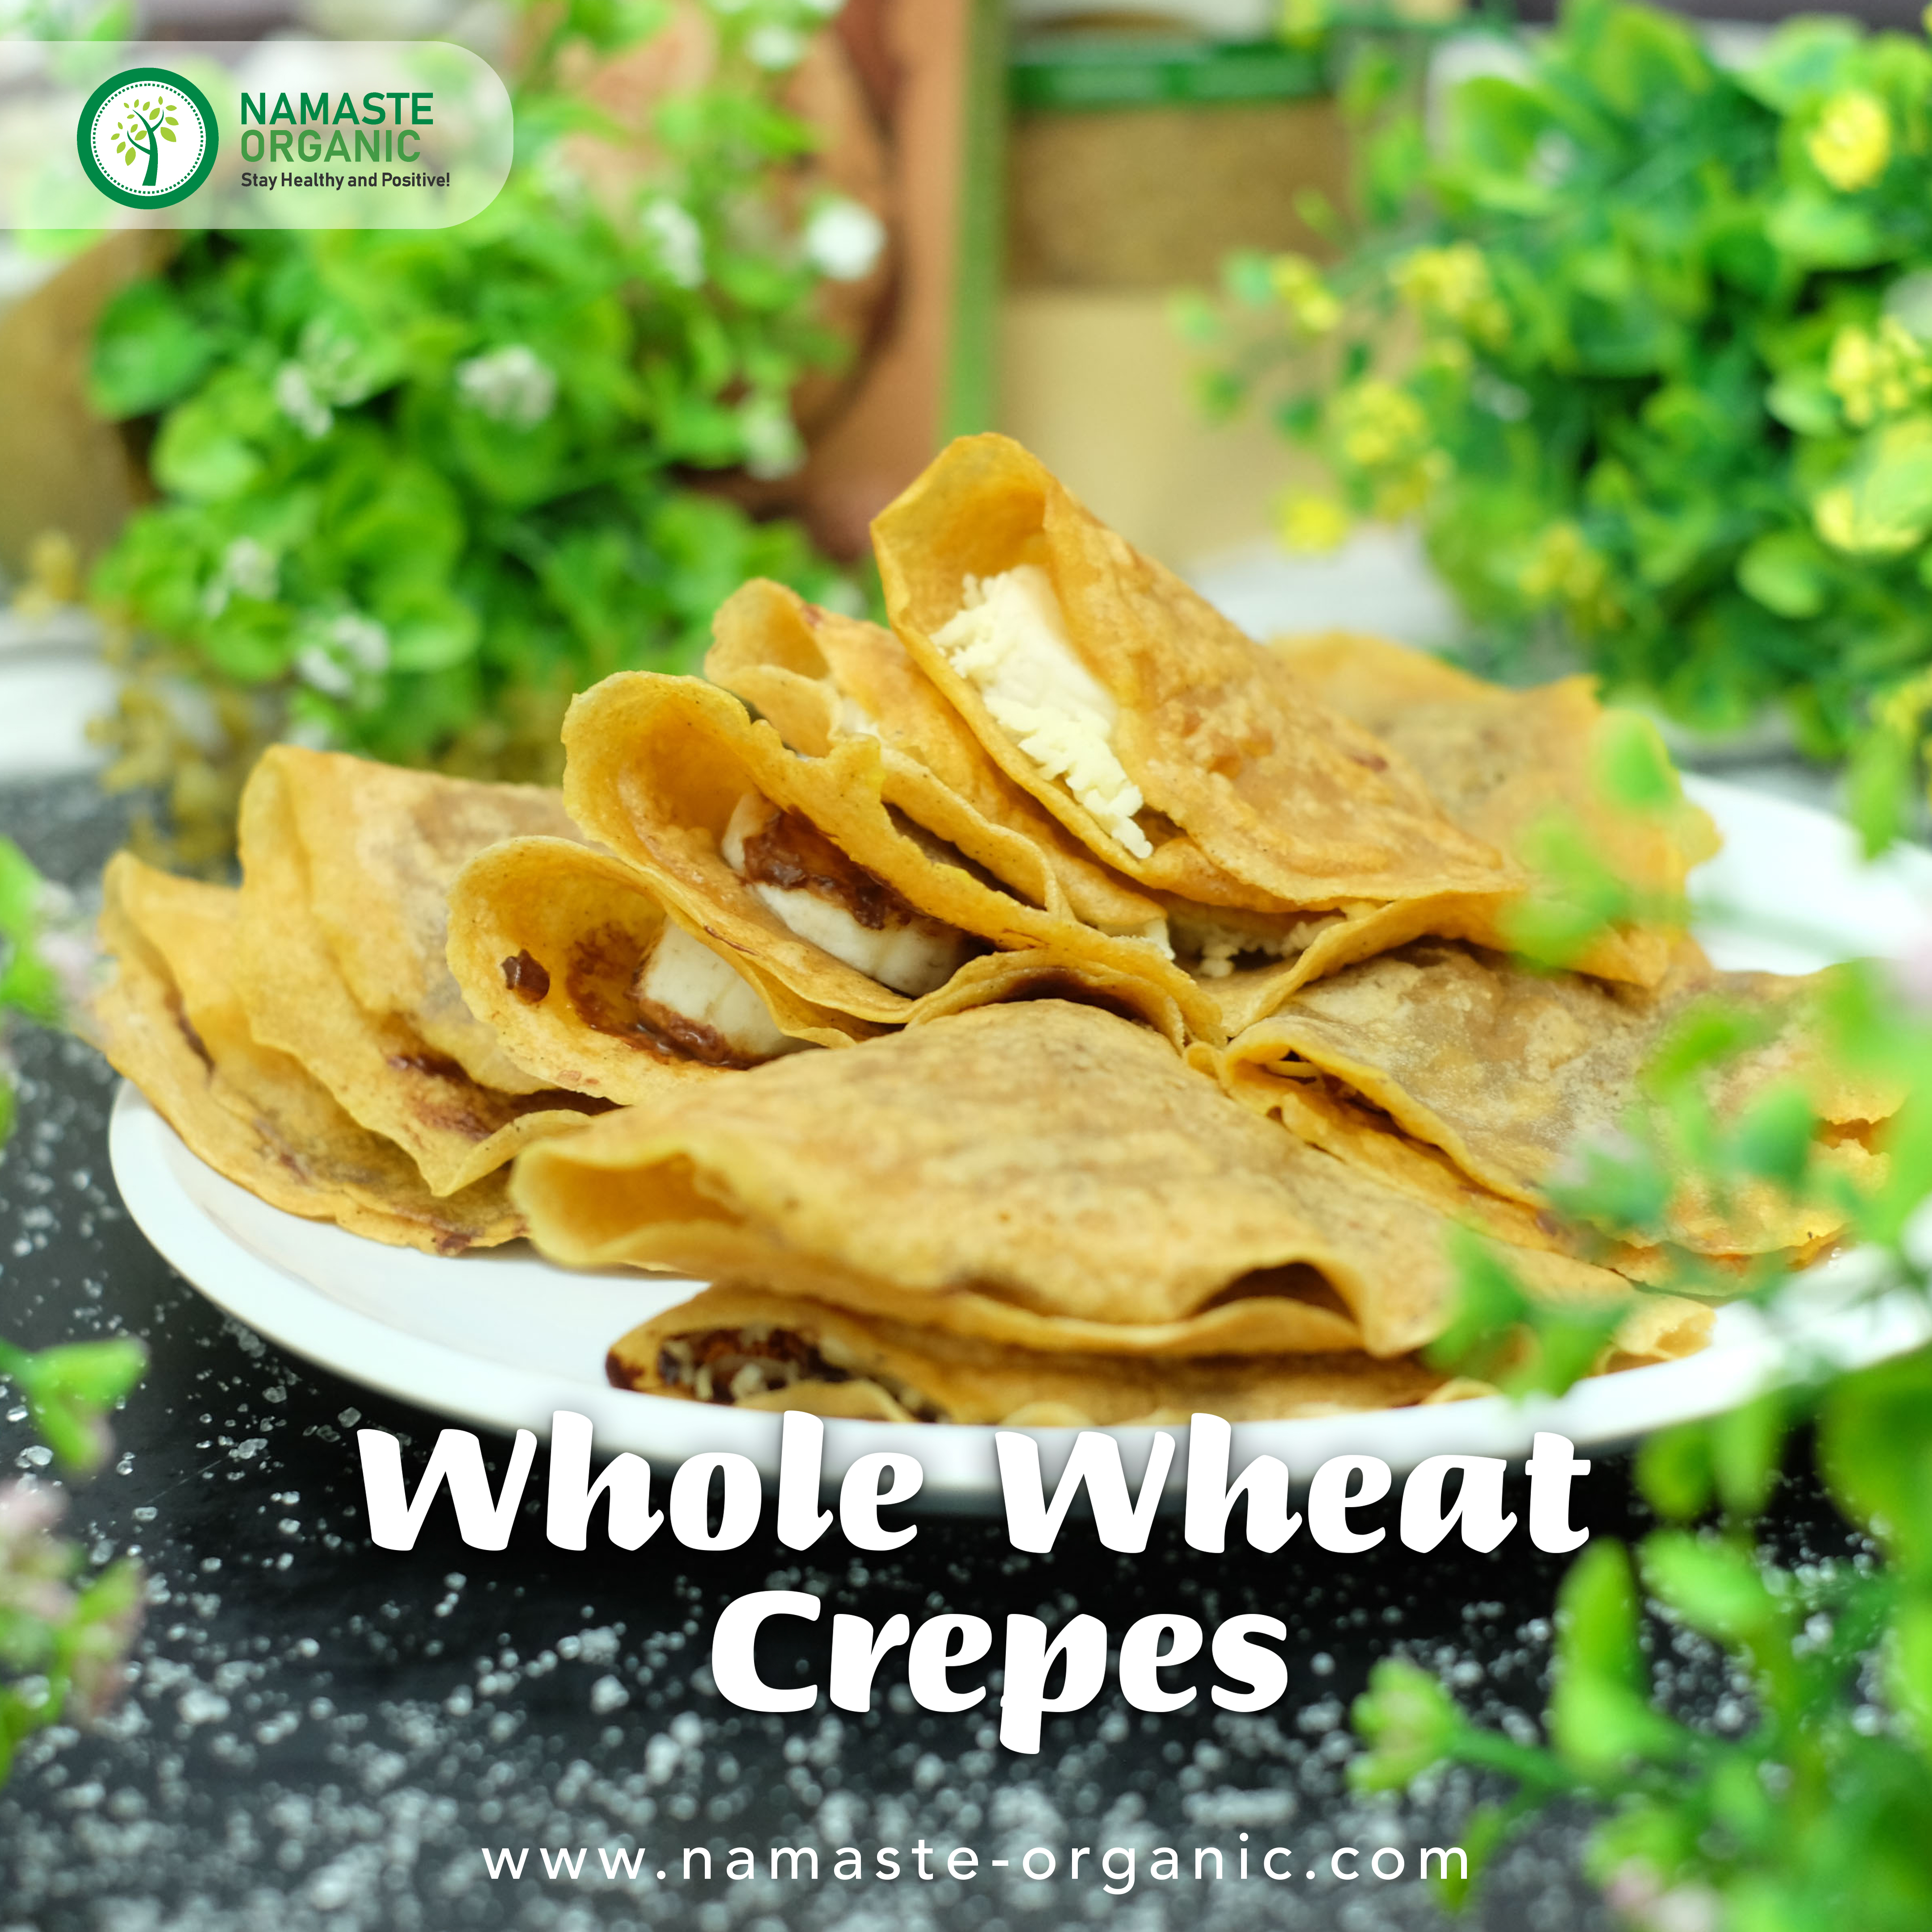 WHOLE WHEAT CREPES image